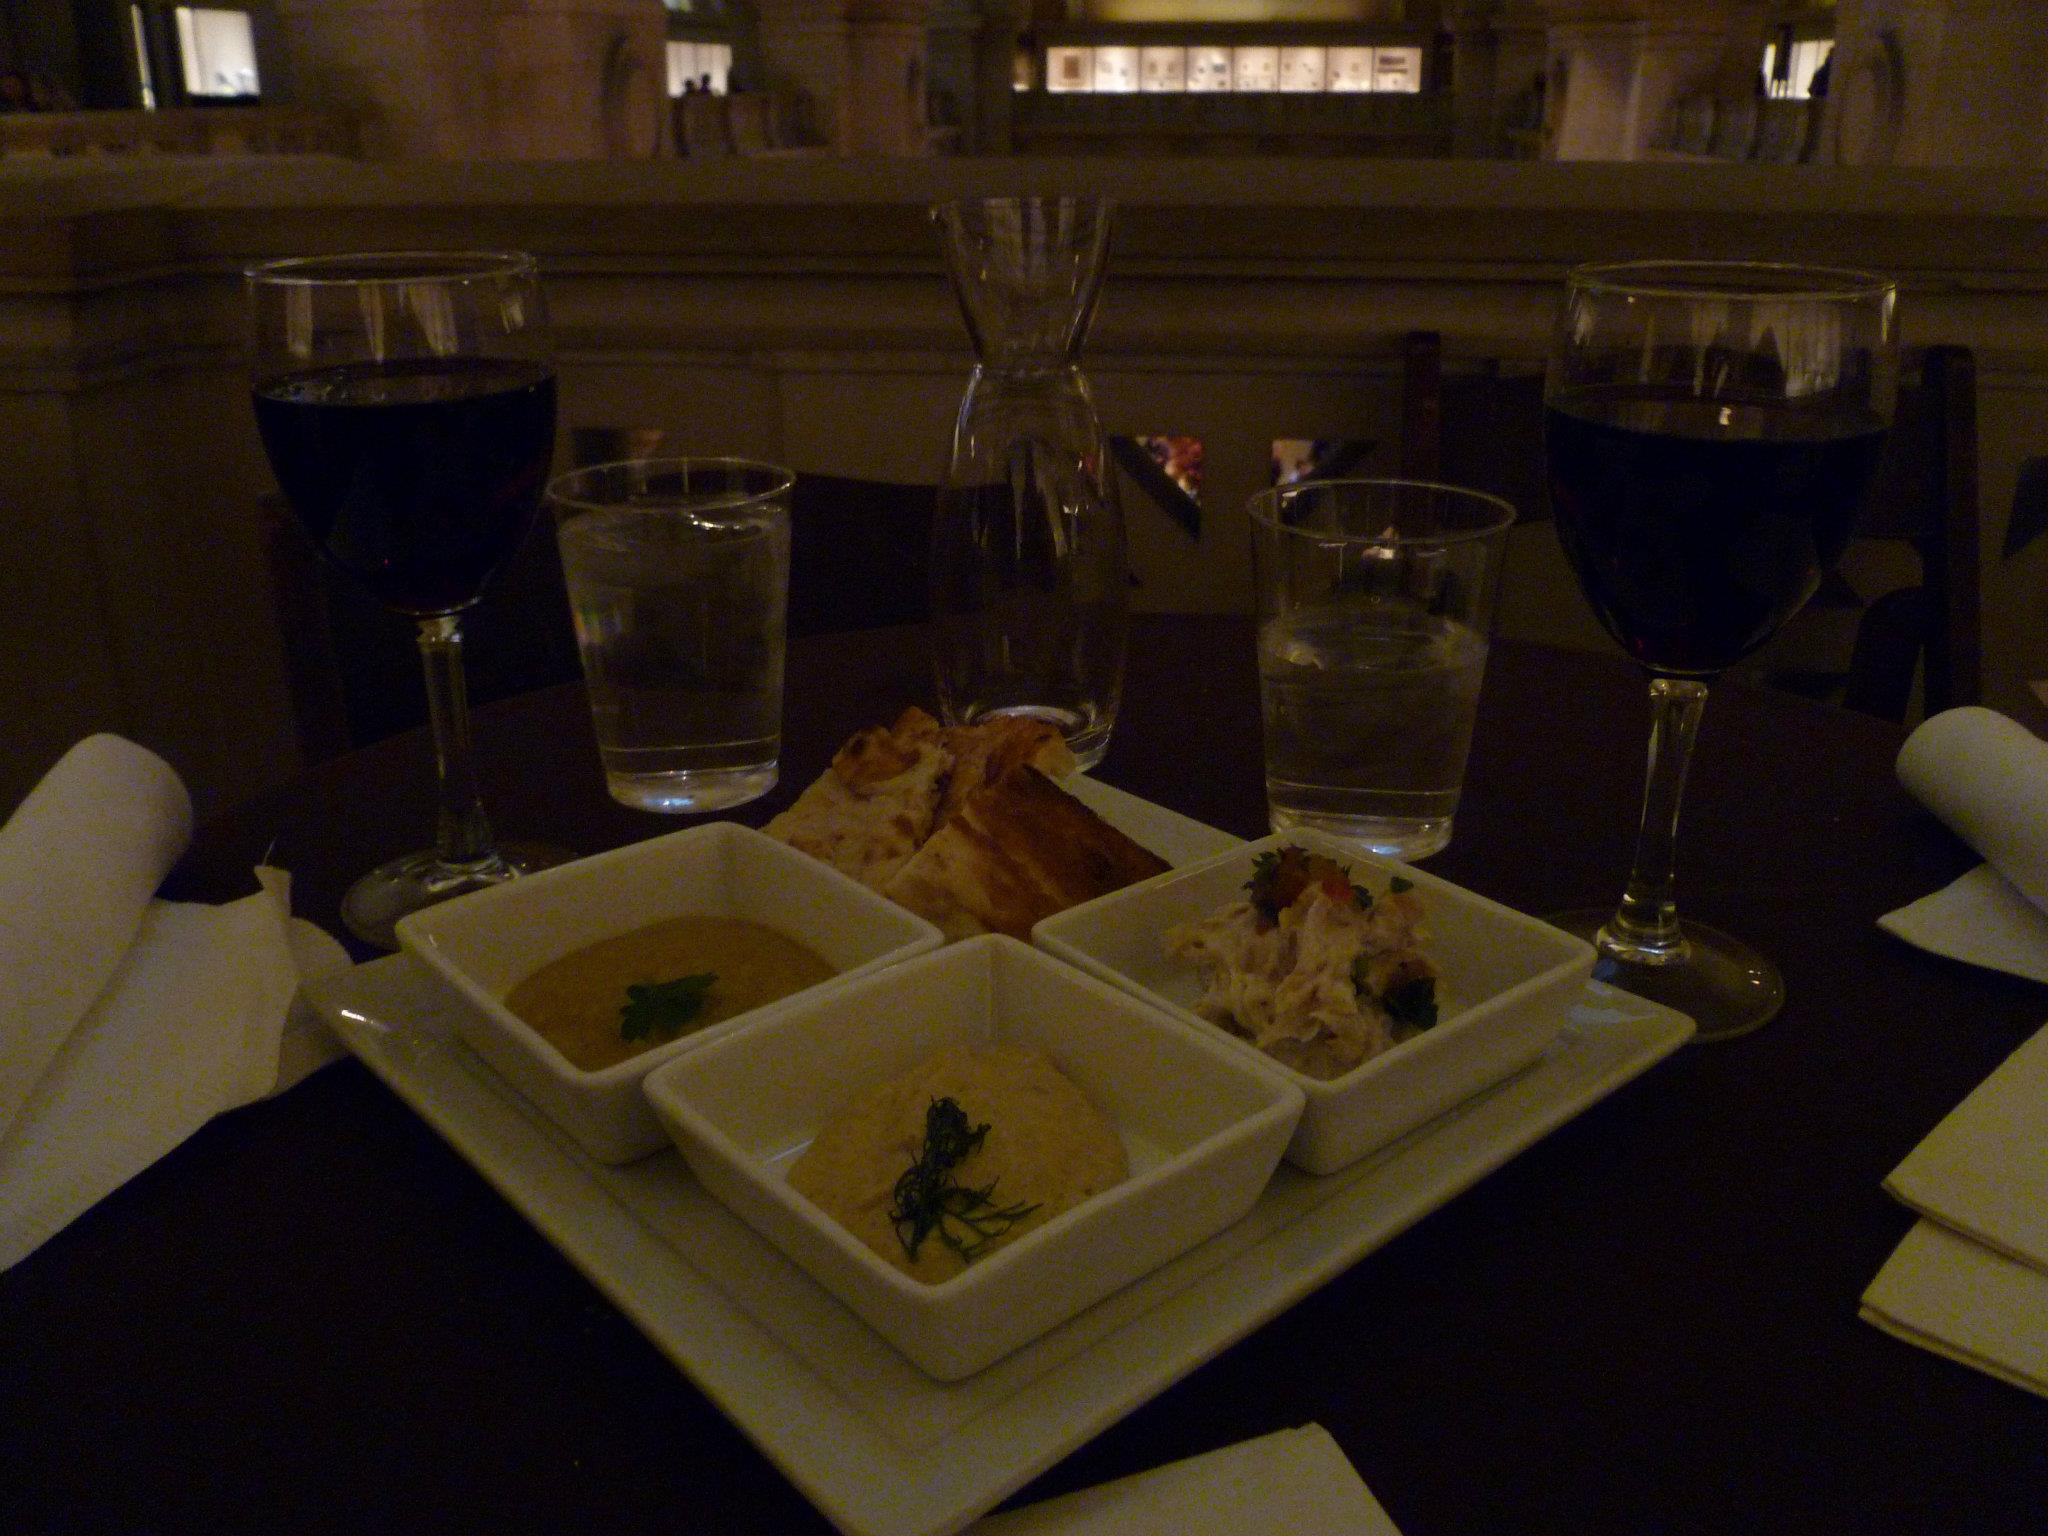 Wine and hummus plate in the museum!